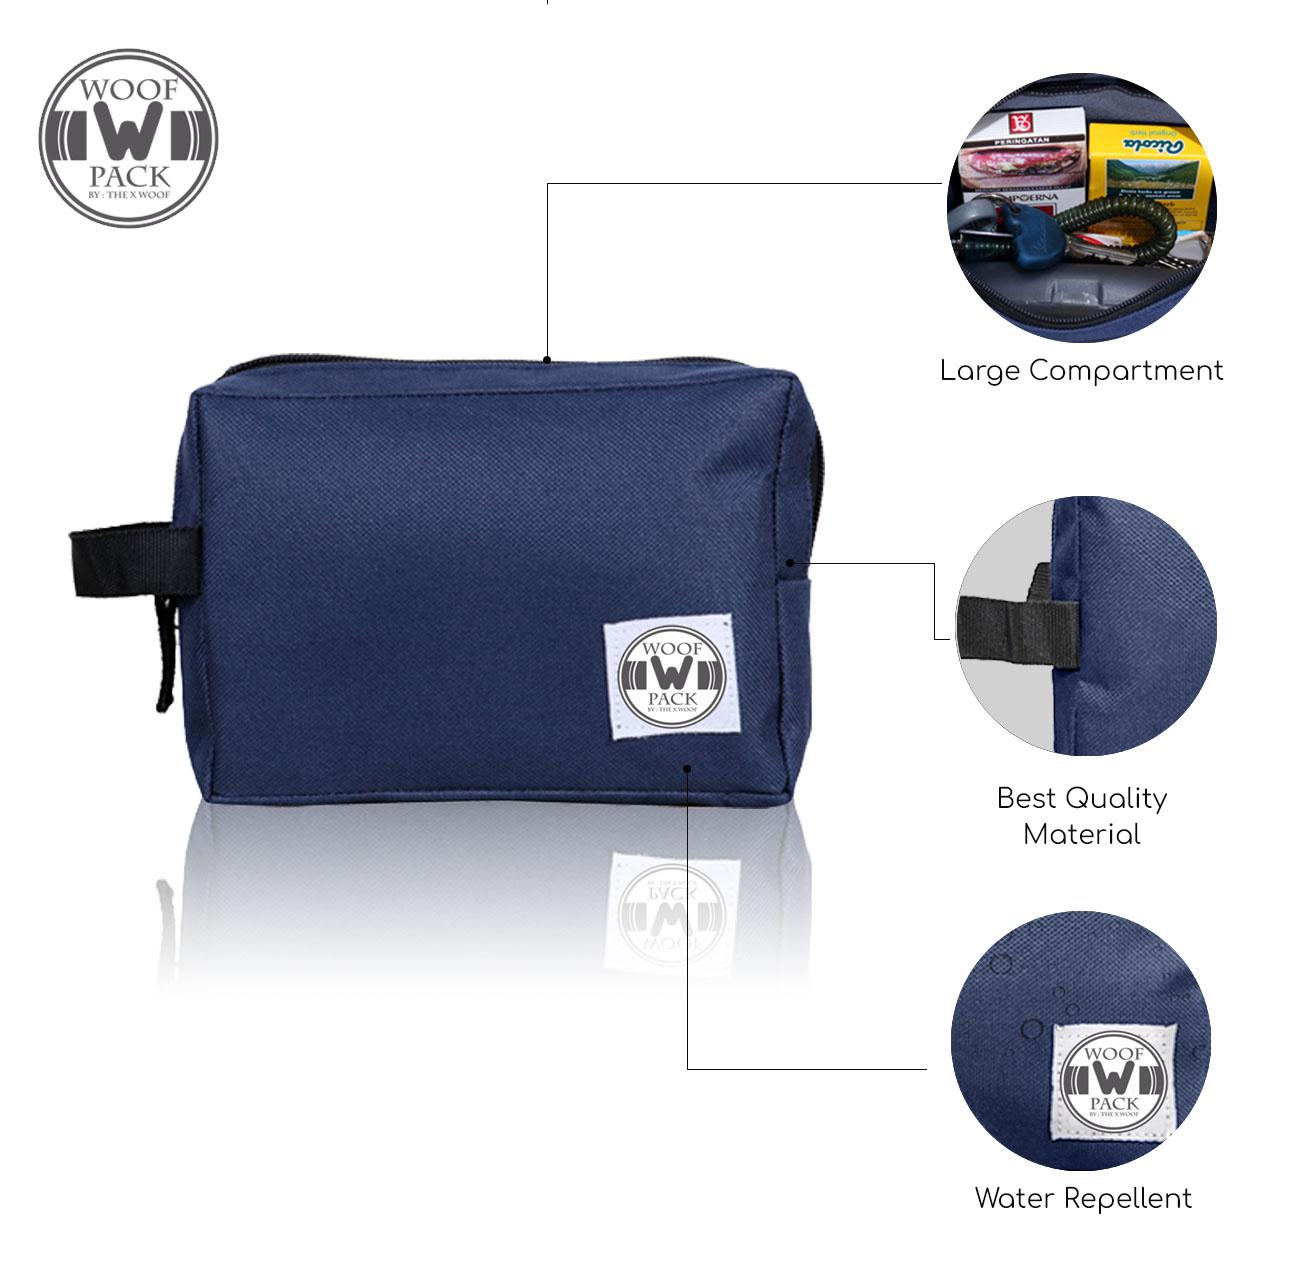 Woof Pack - Daily Pouch Tpouch 2.0x Blue By The X Woof Bag.